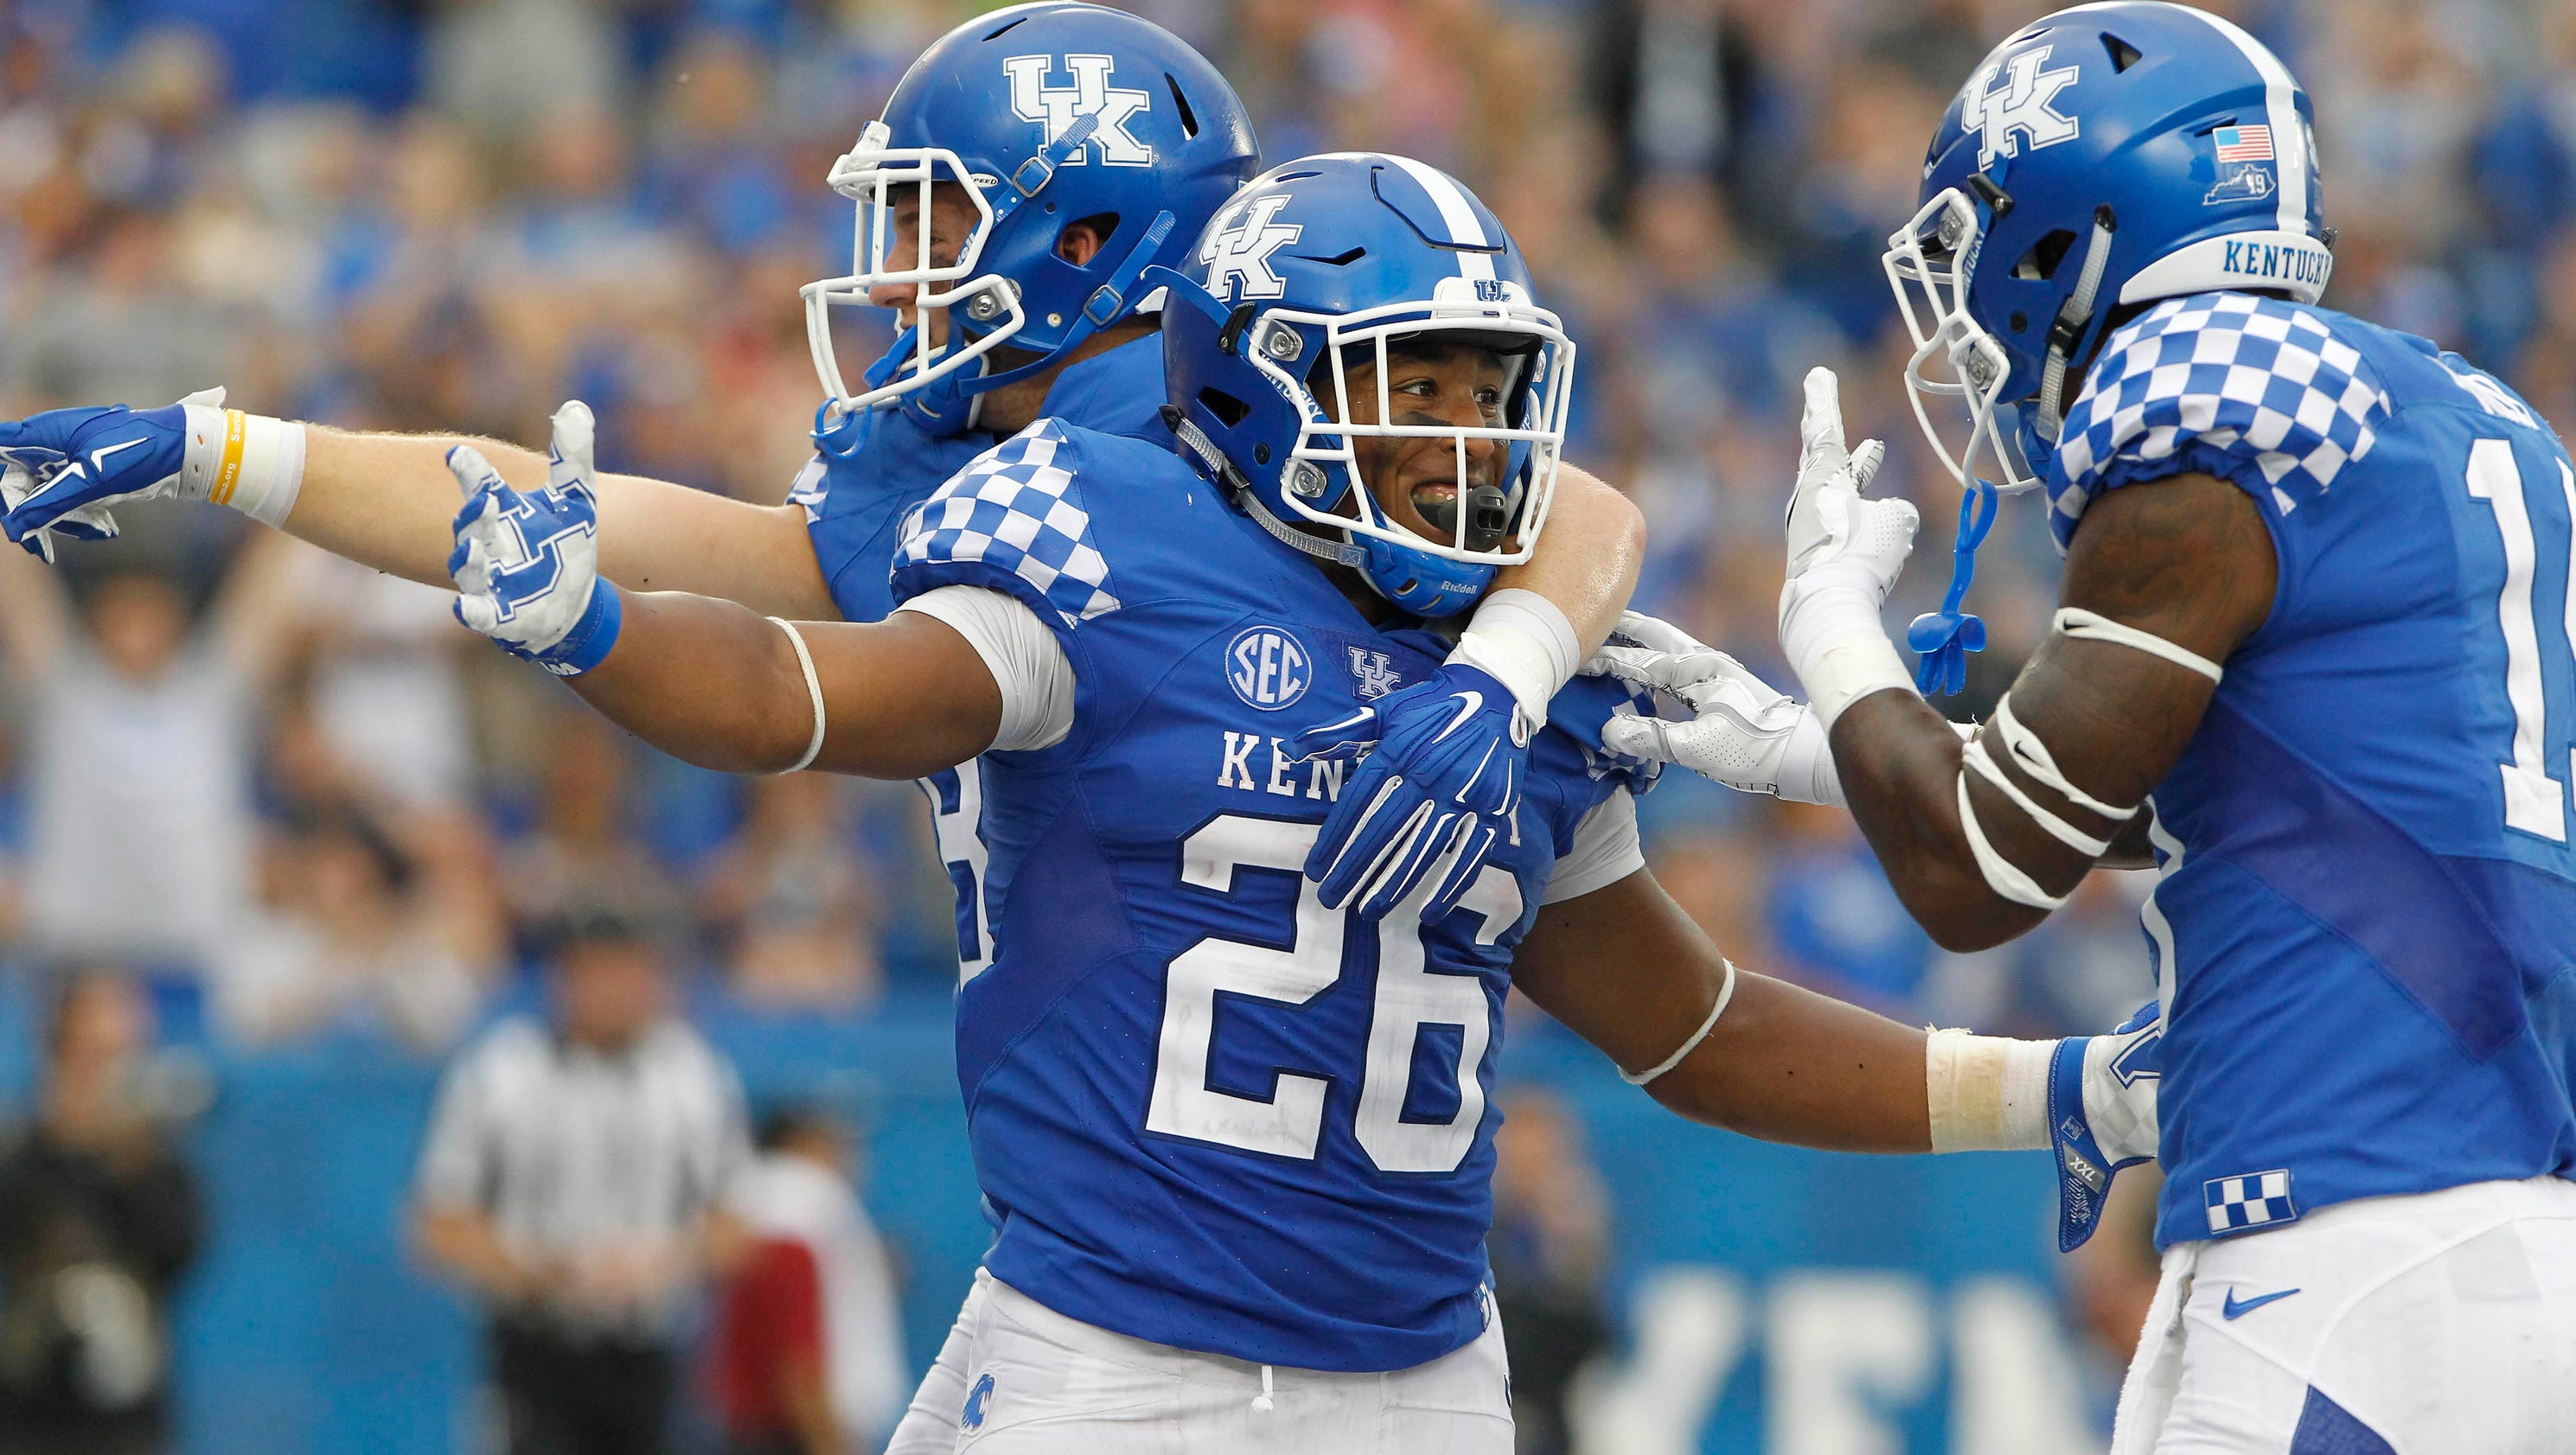 uk louisville football score sports book college football lines